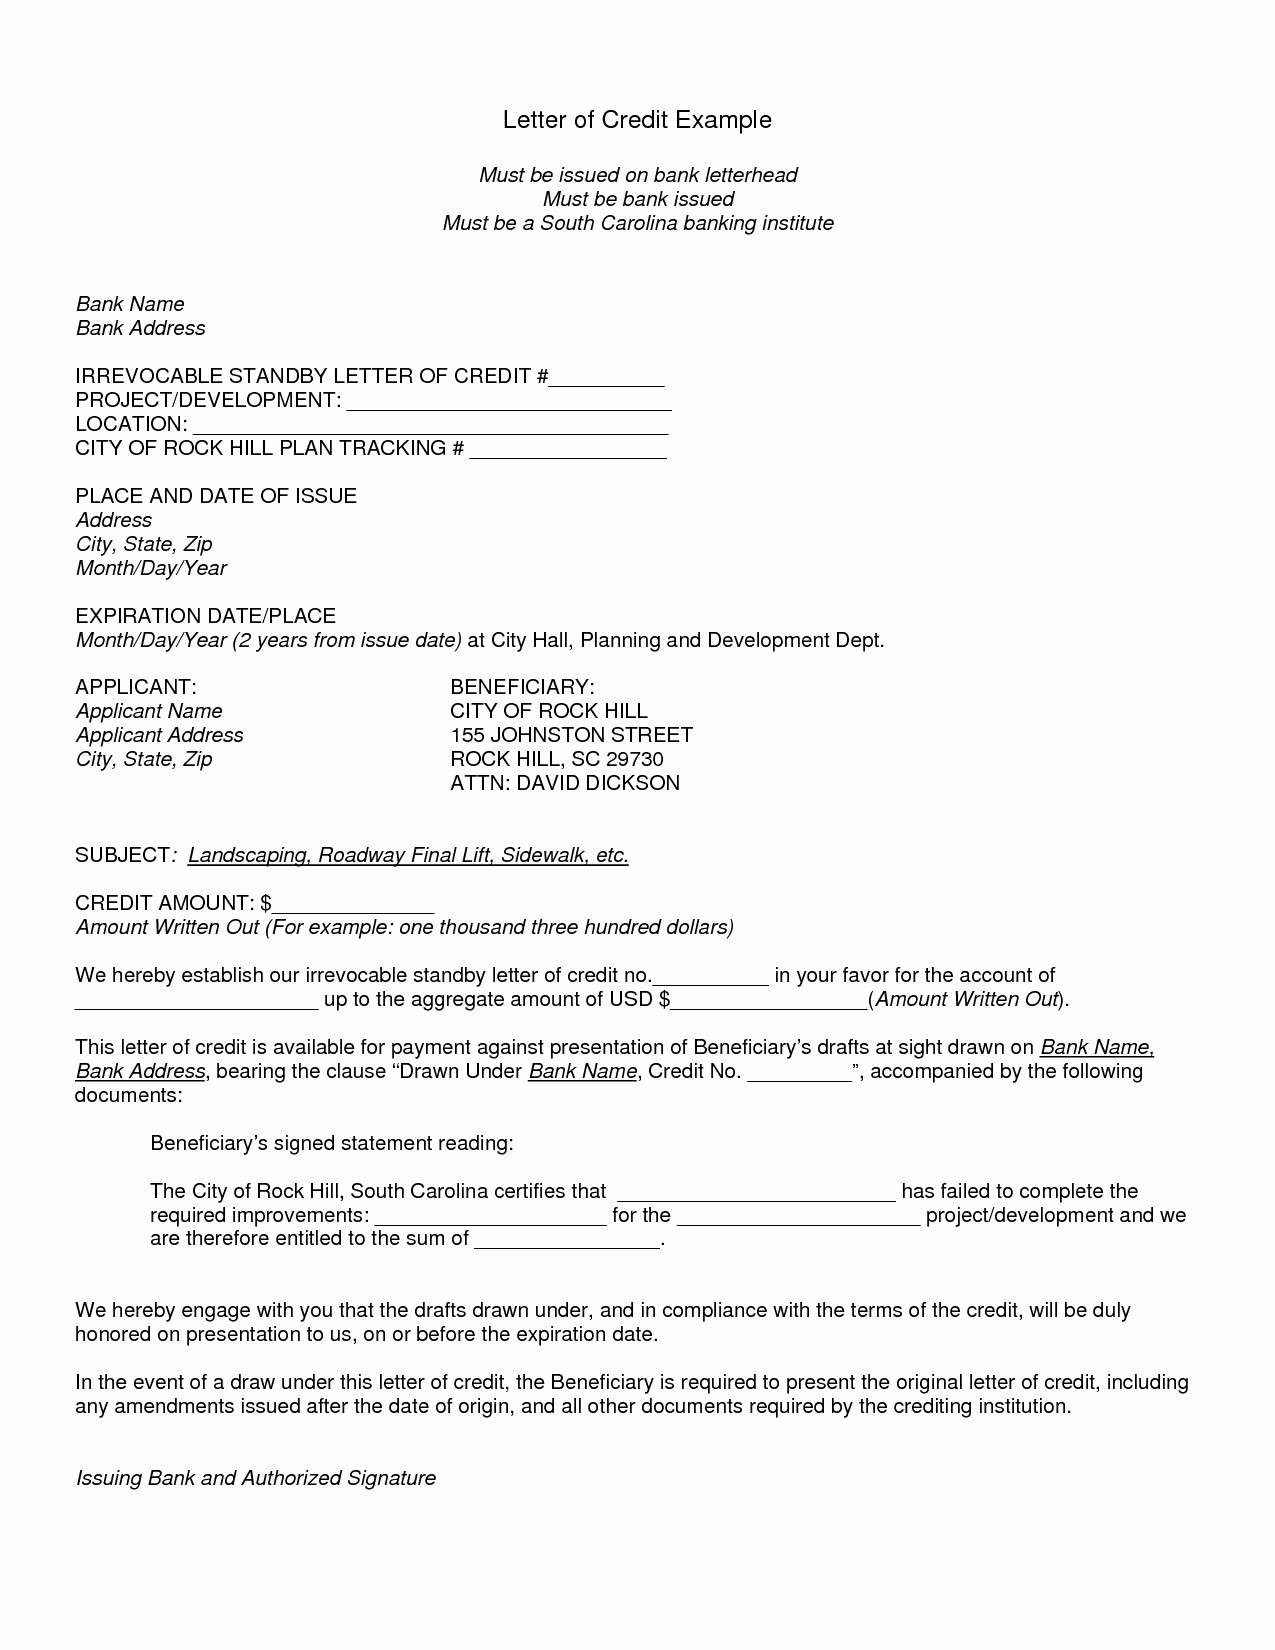 irrevocable letter of credit irrevocable letter of credit template examples letter 47818